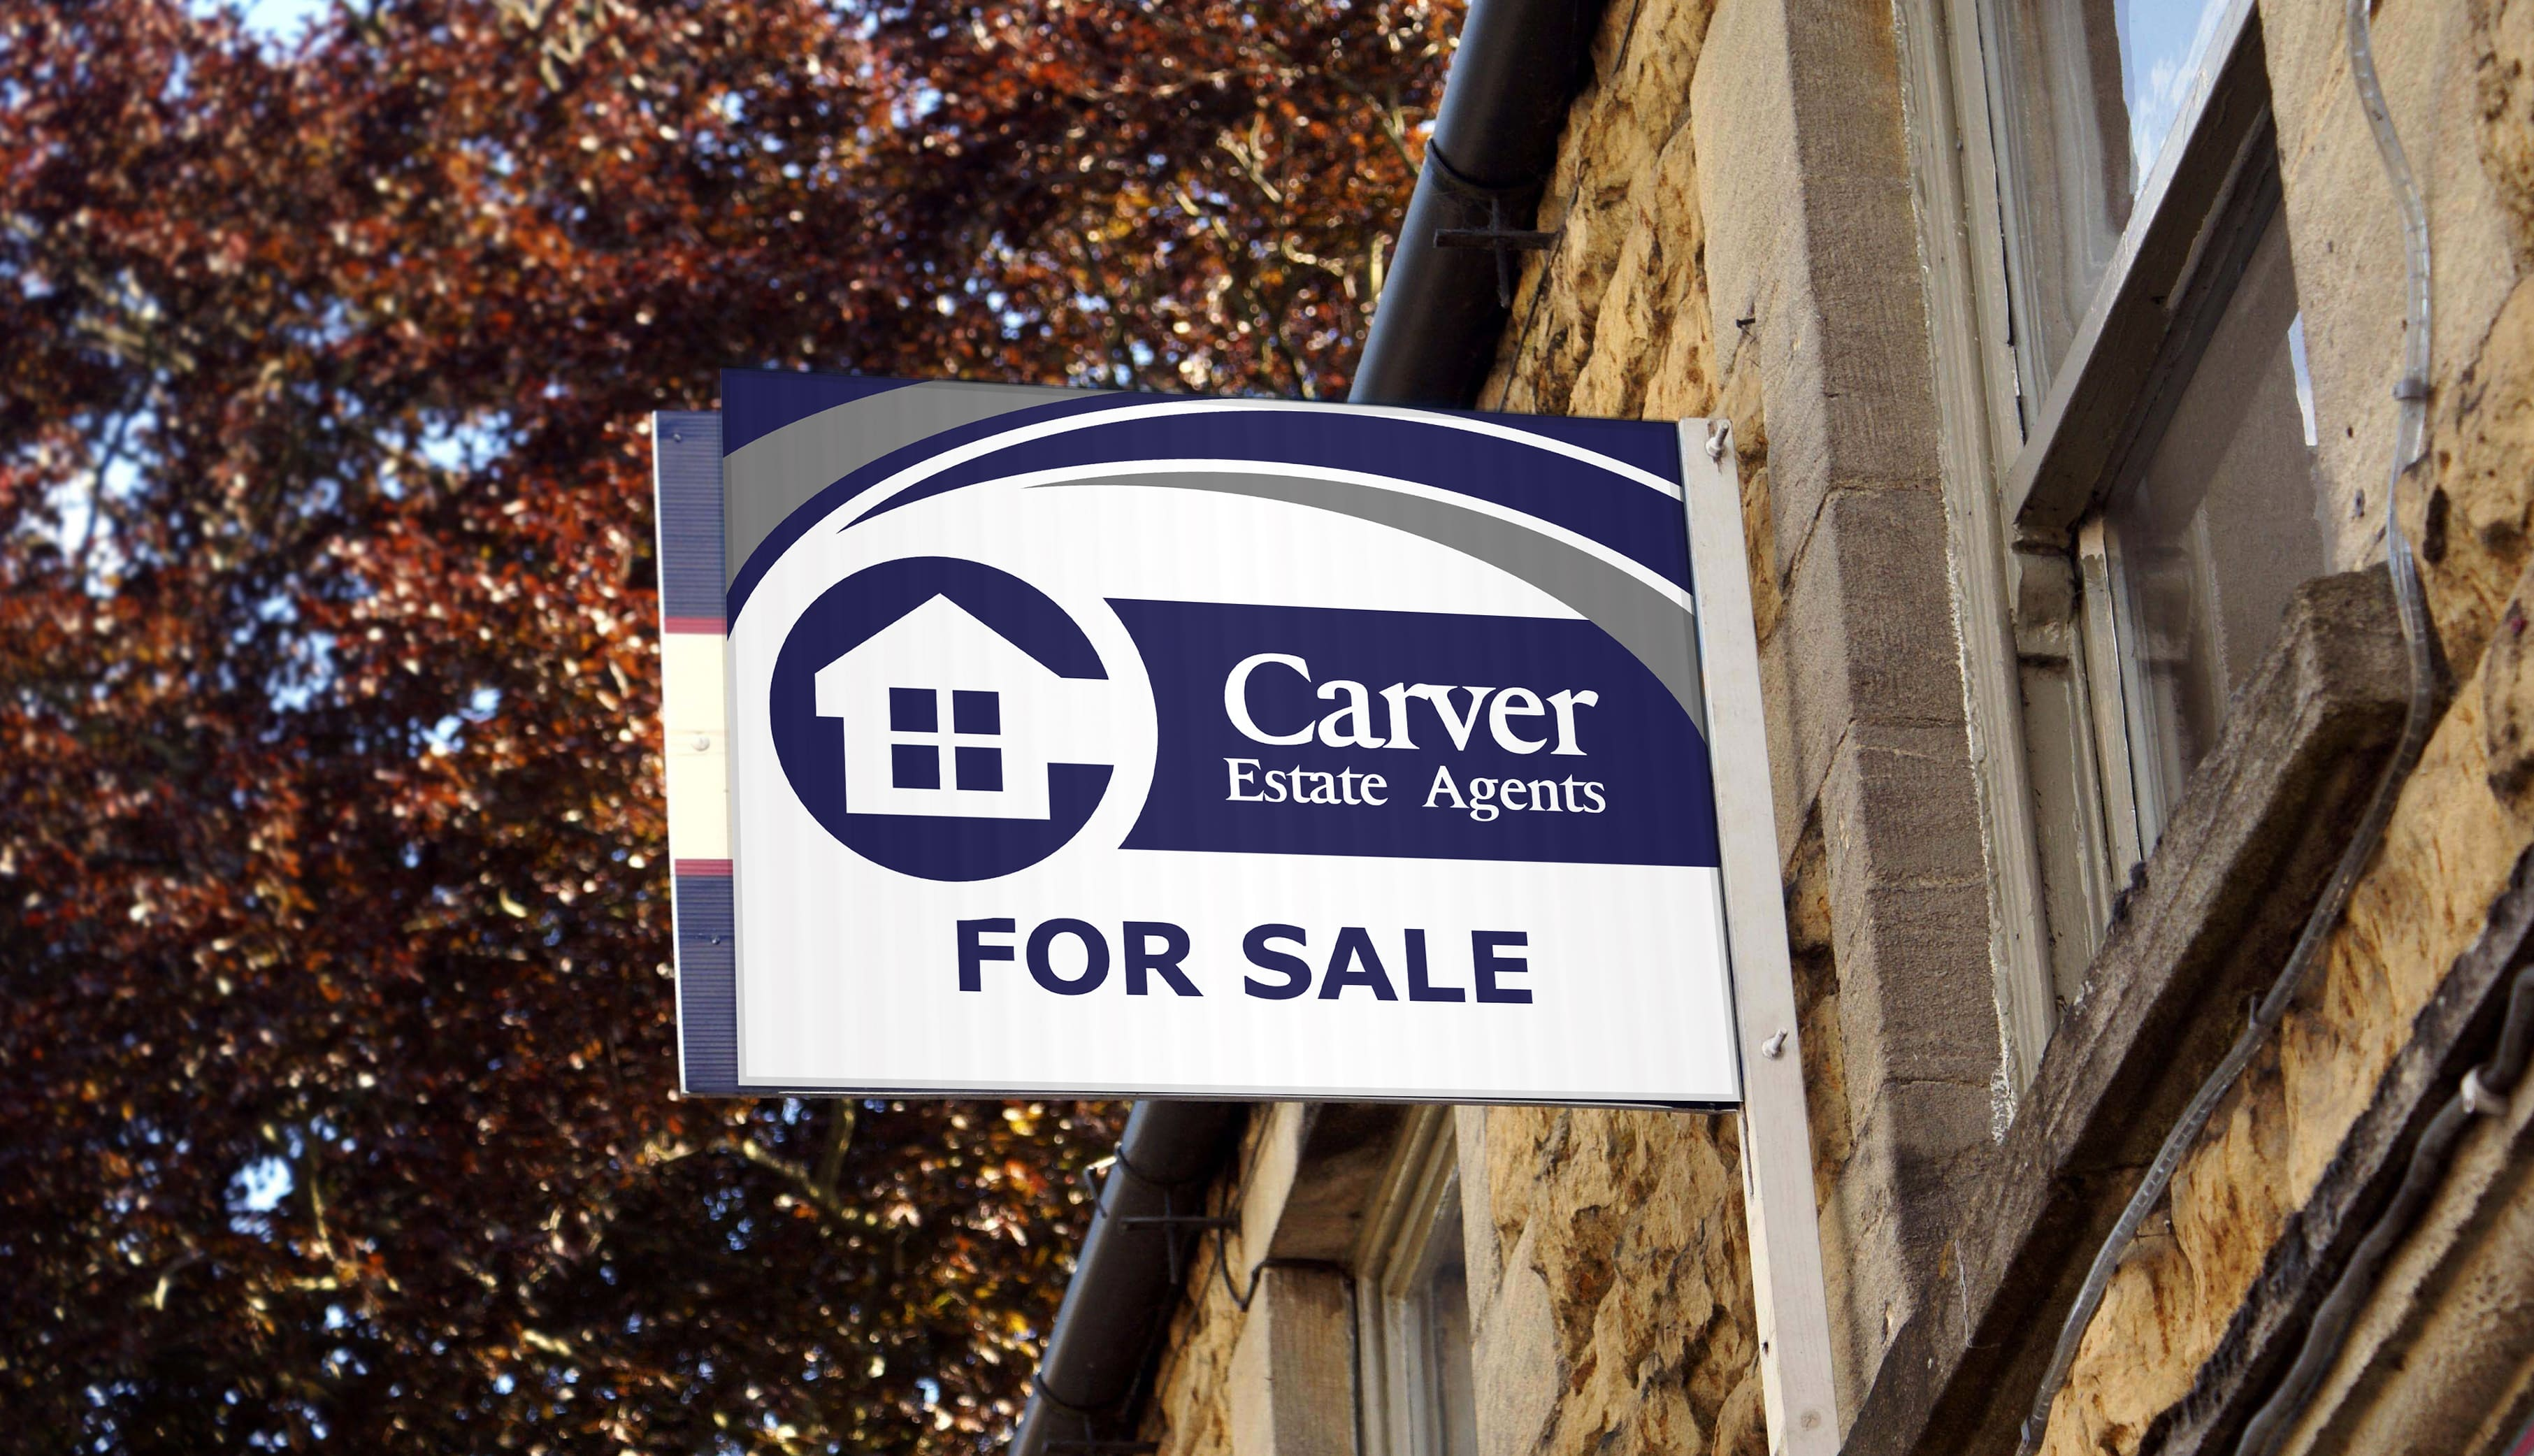 Carver Estate Agents